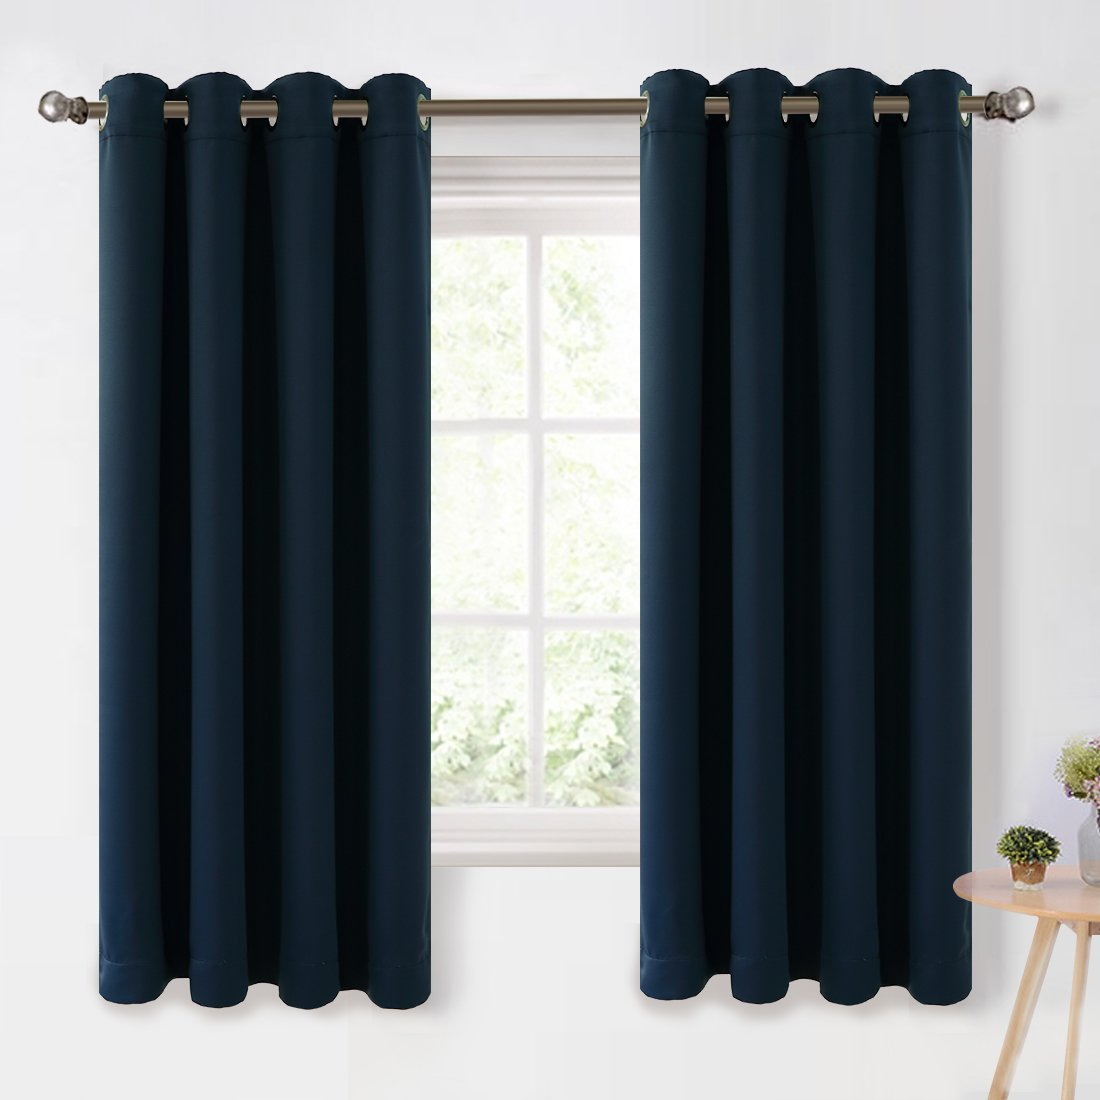 Maevis Blackout Curtains 2 Panels for Bedroom Window Treatment Thermal Insulated Solid Grommet Blackout Drapes Royal Blue